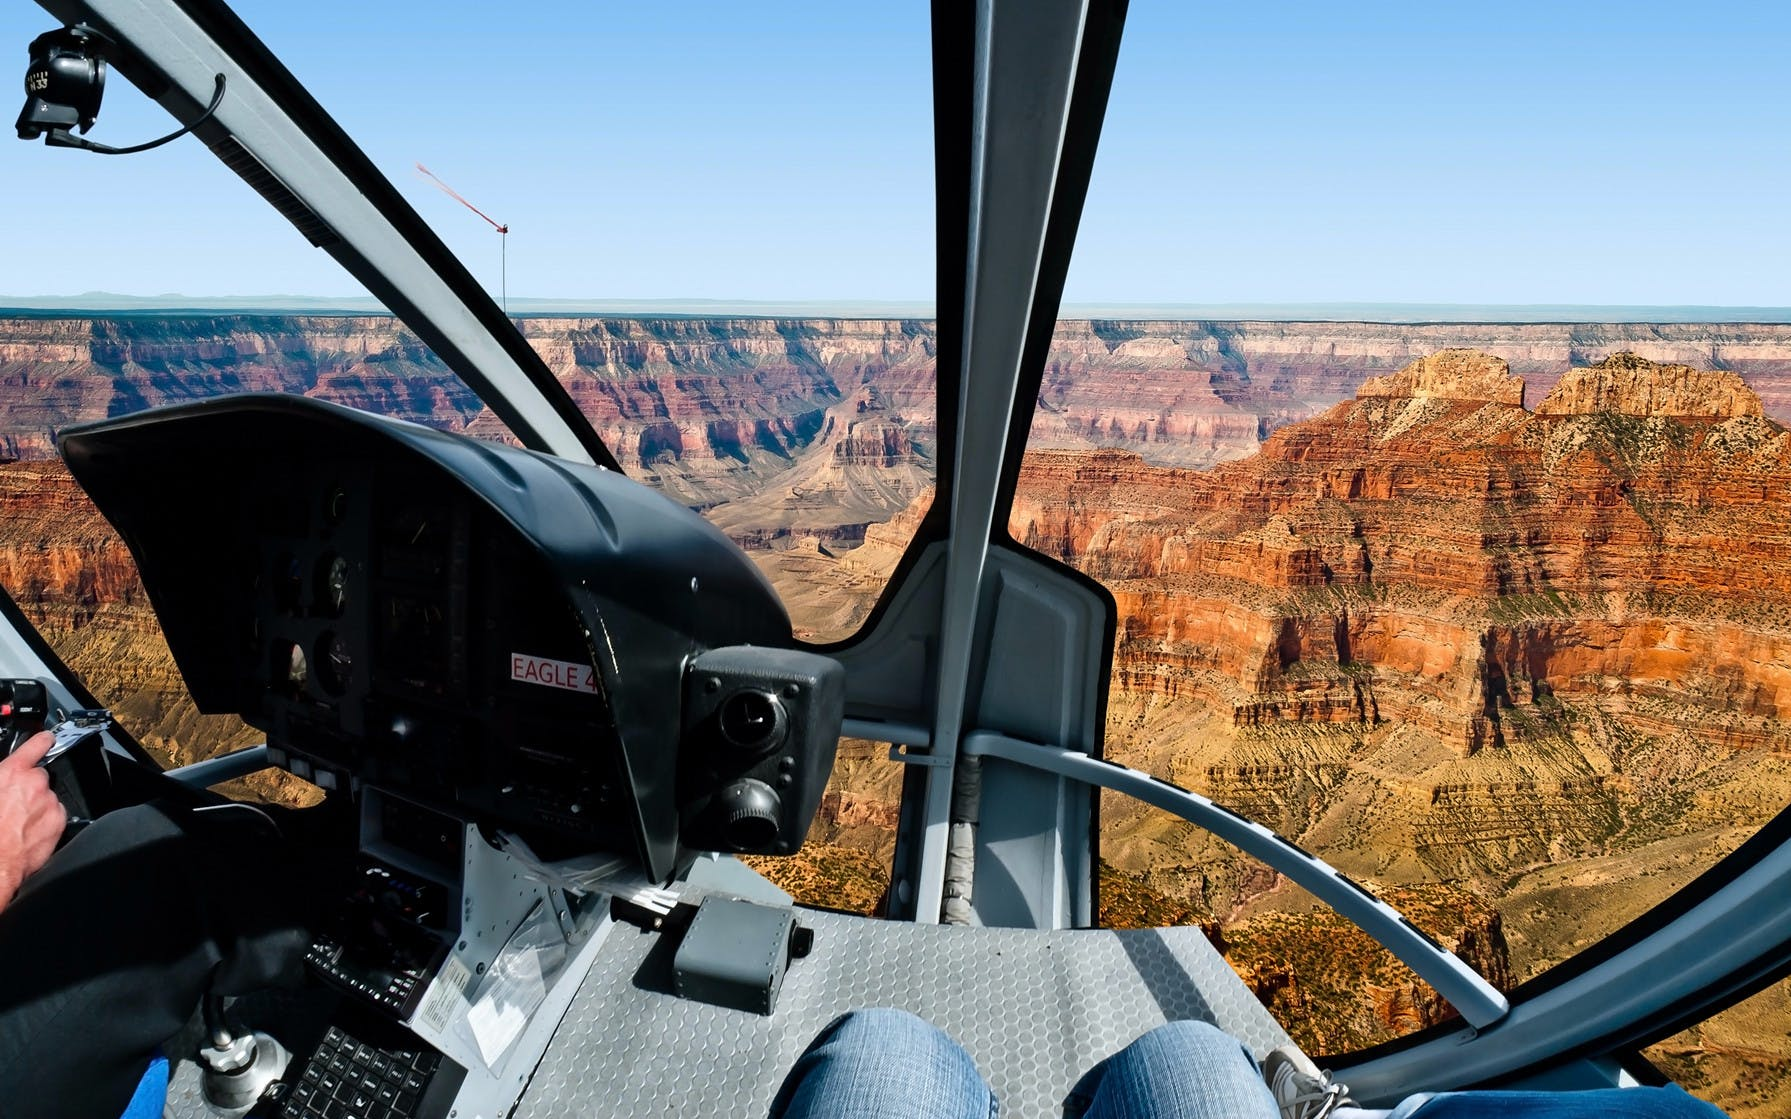 south rim helicopter tour with optional jeep excursion - 45 minutes (self drive)-2